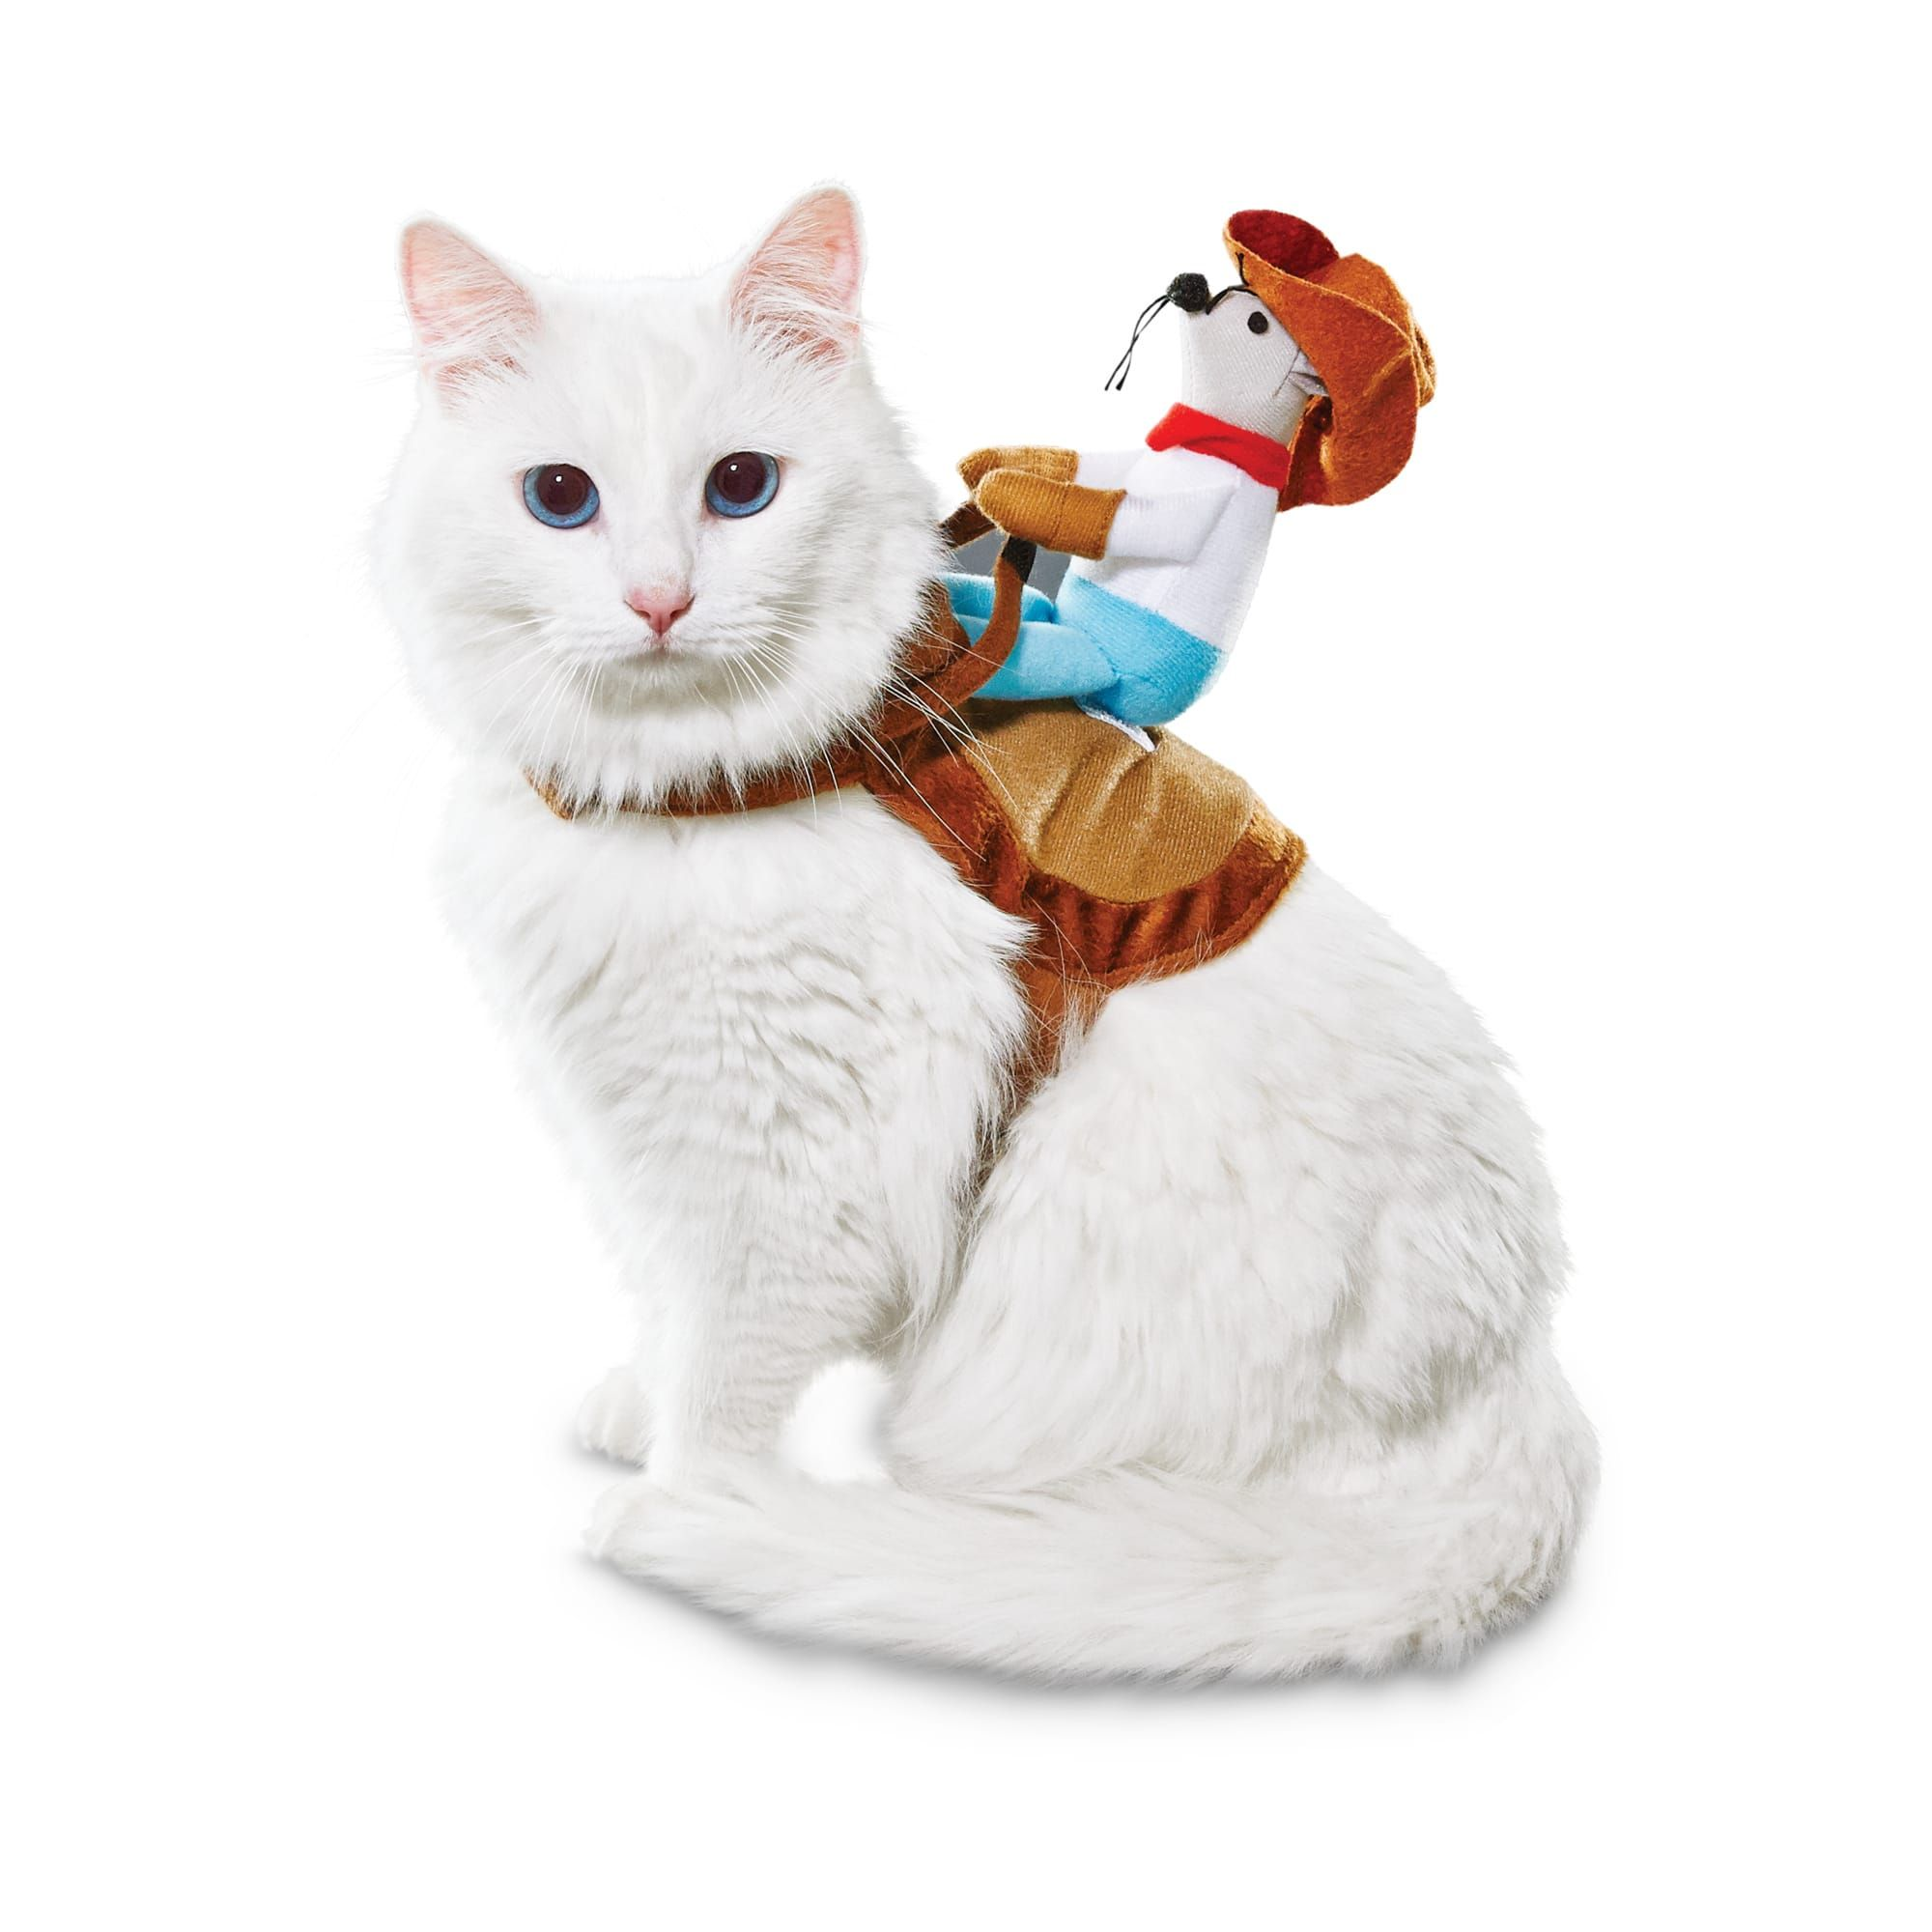 Bootique Cowboy Kitty Up Cat Costume Petco In 2020 Cat Halloween Costume Pet Costumes Cat Cat Costumes